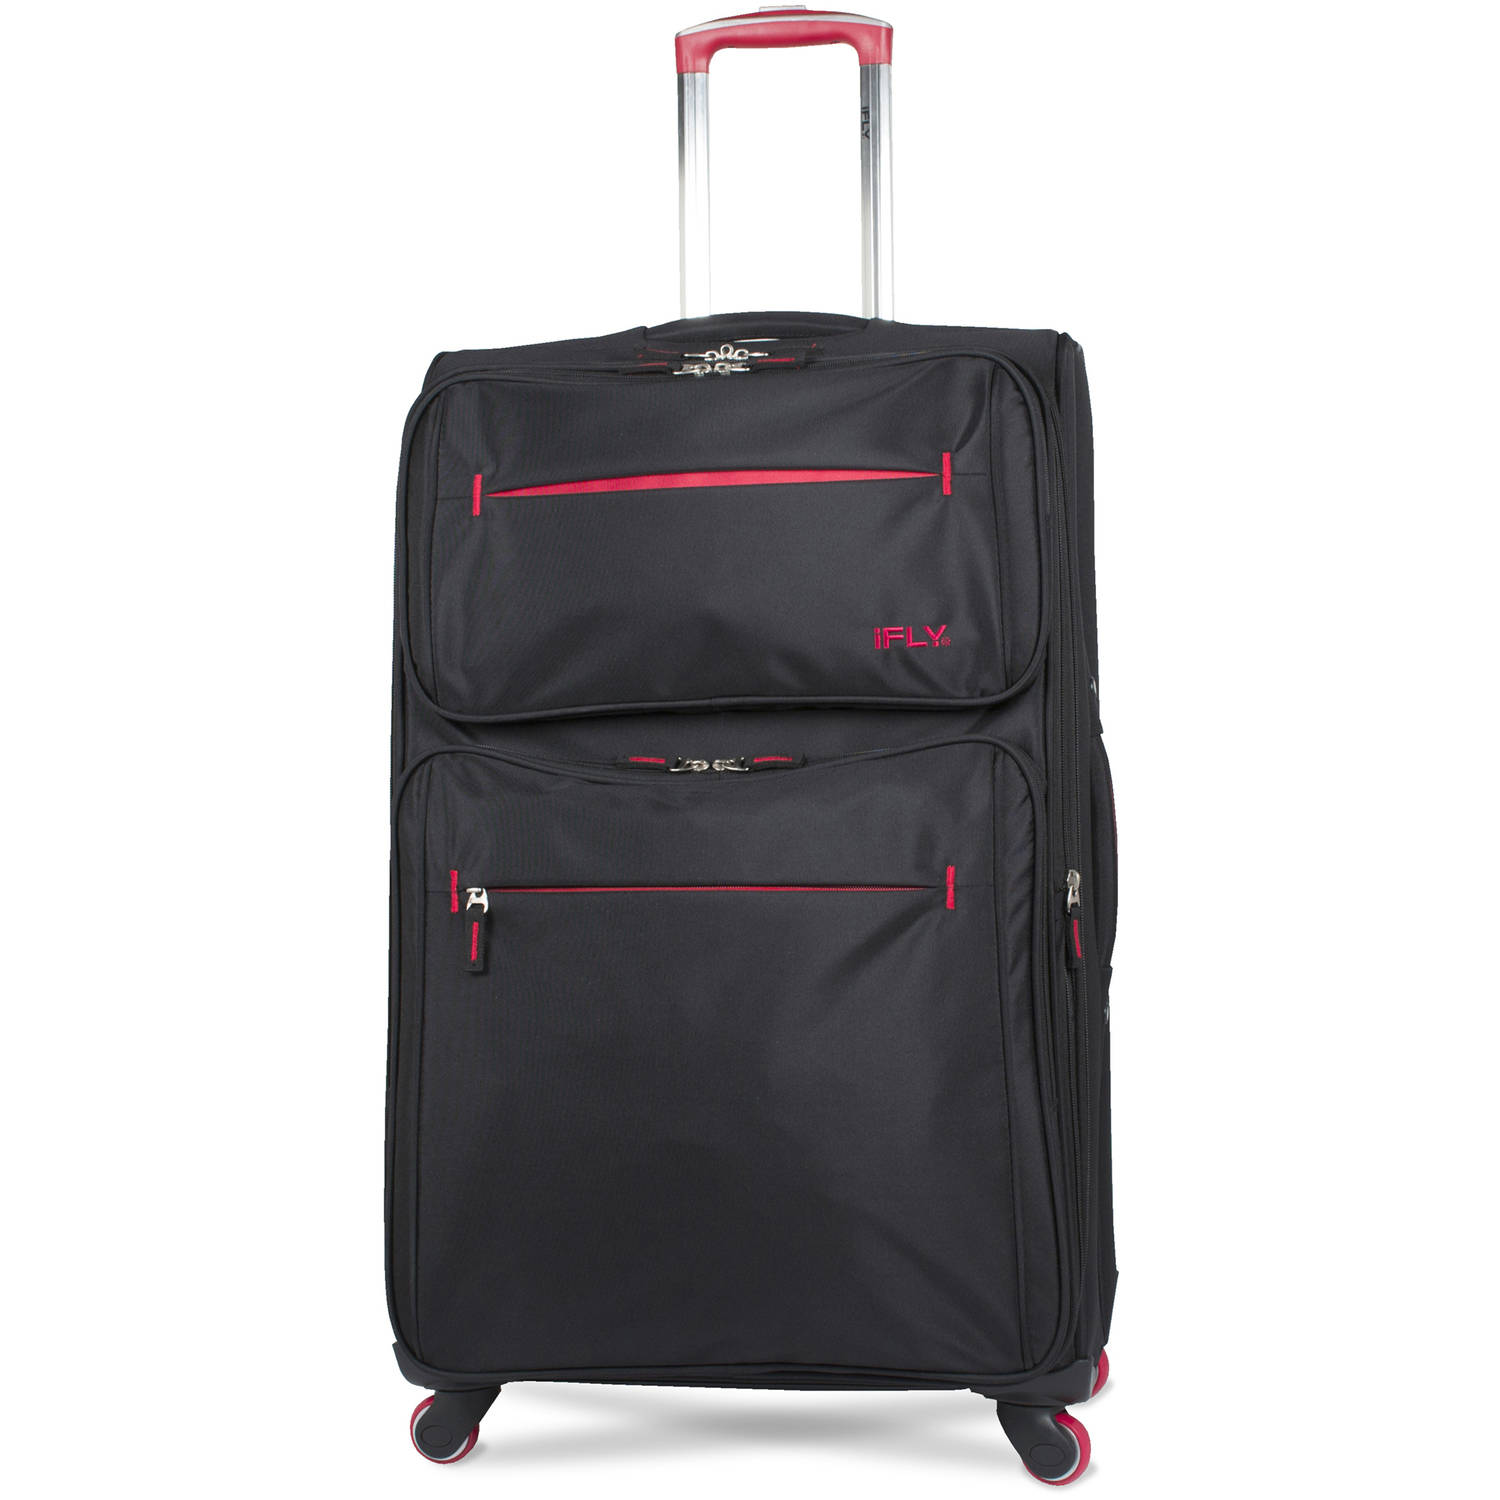 66d8221a728a iFLY - iFLY Soft Sided Luggage Accent 28